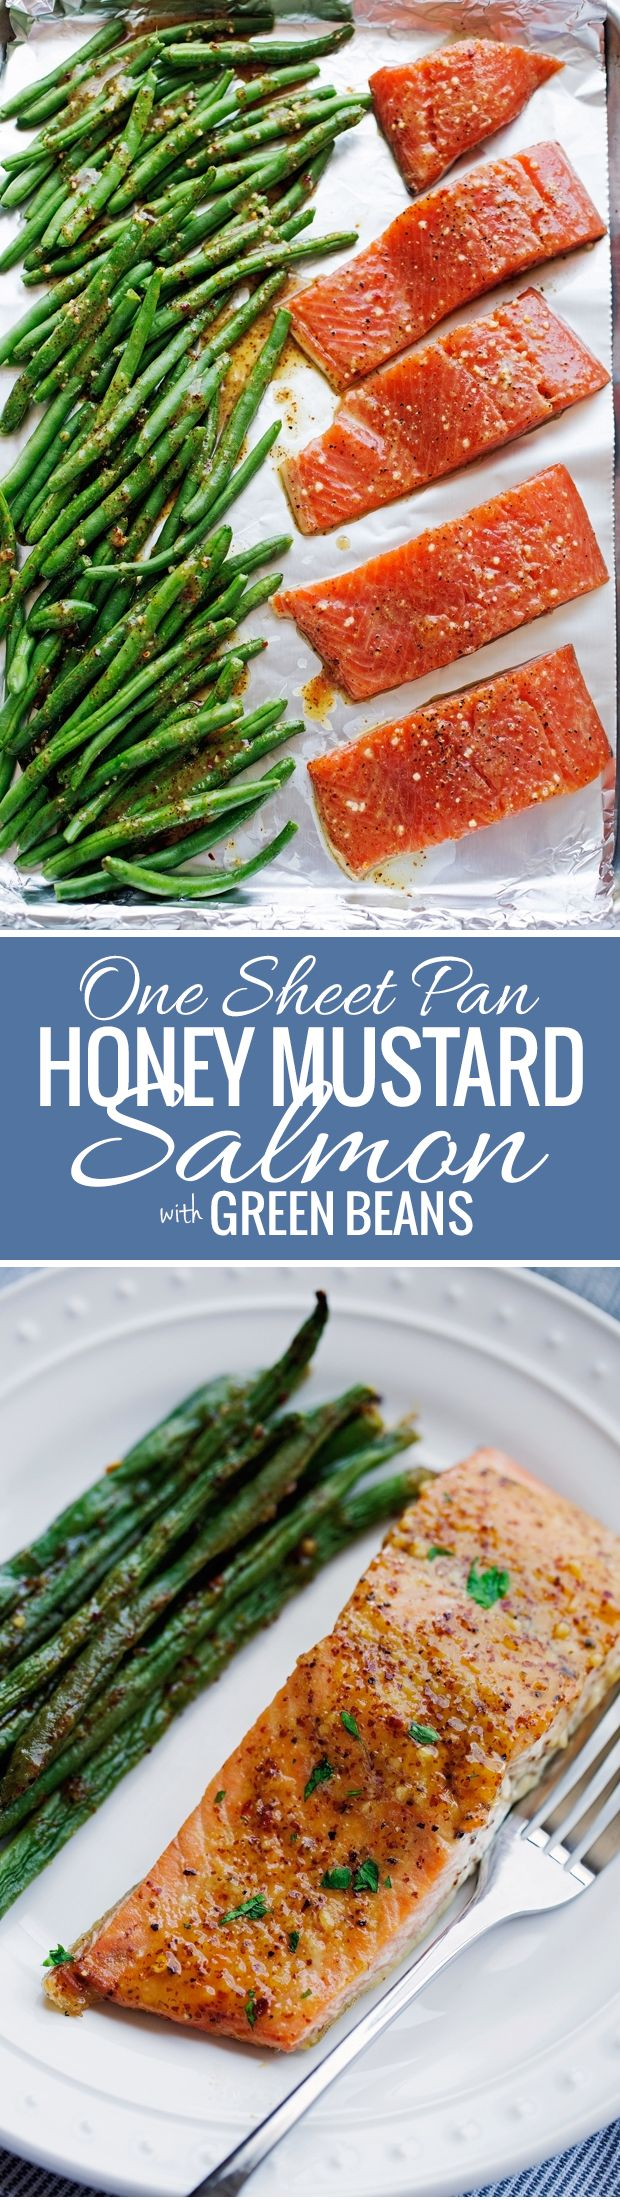 One Sheet Pan Honey Mustard Salmon with Green Beans - An easy weeknight dinner that's all baked in one pan! #roastedgreenbeans #roastedsalmon #honeymustard #honeymustardsalmon | Littlespicejar.com @littlespicejar